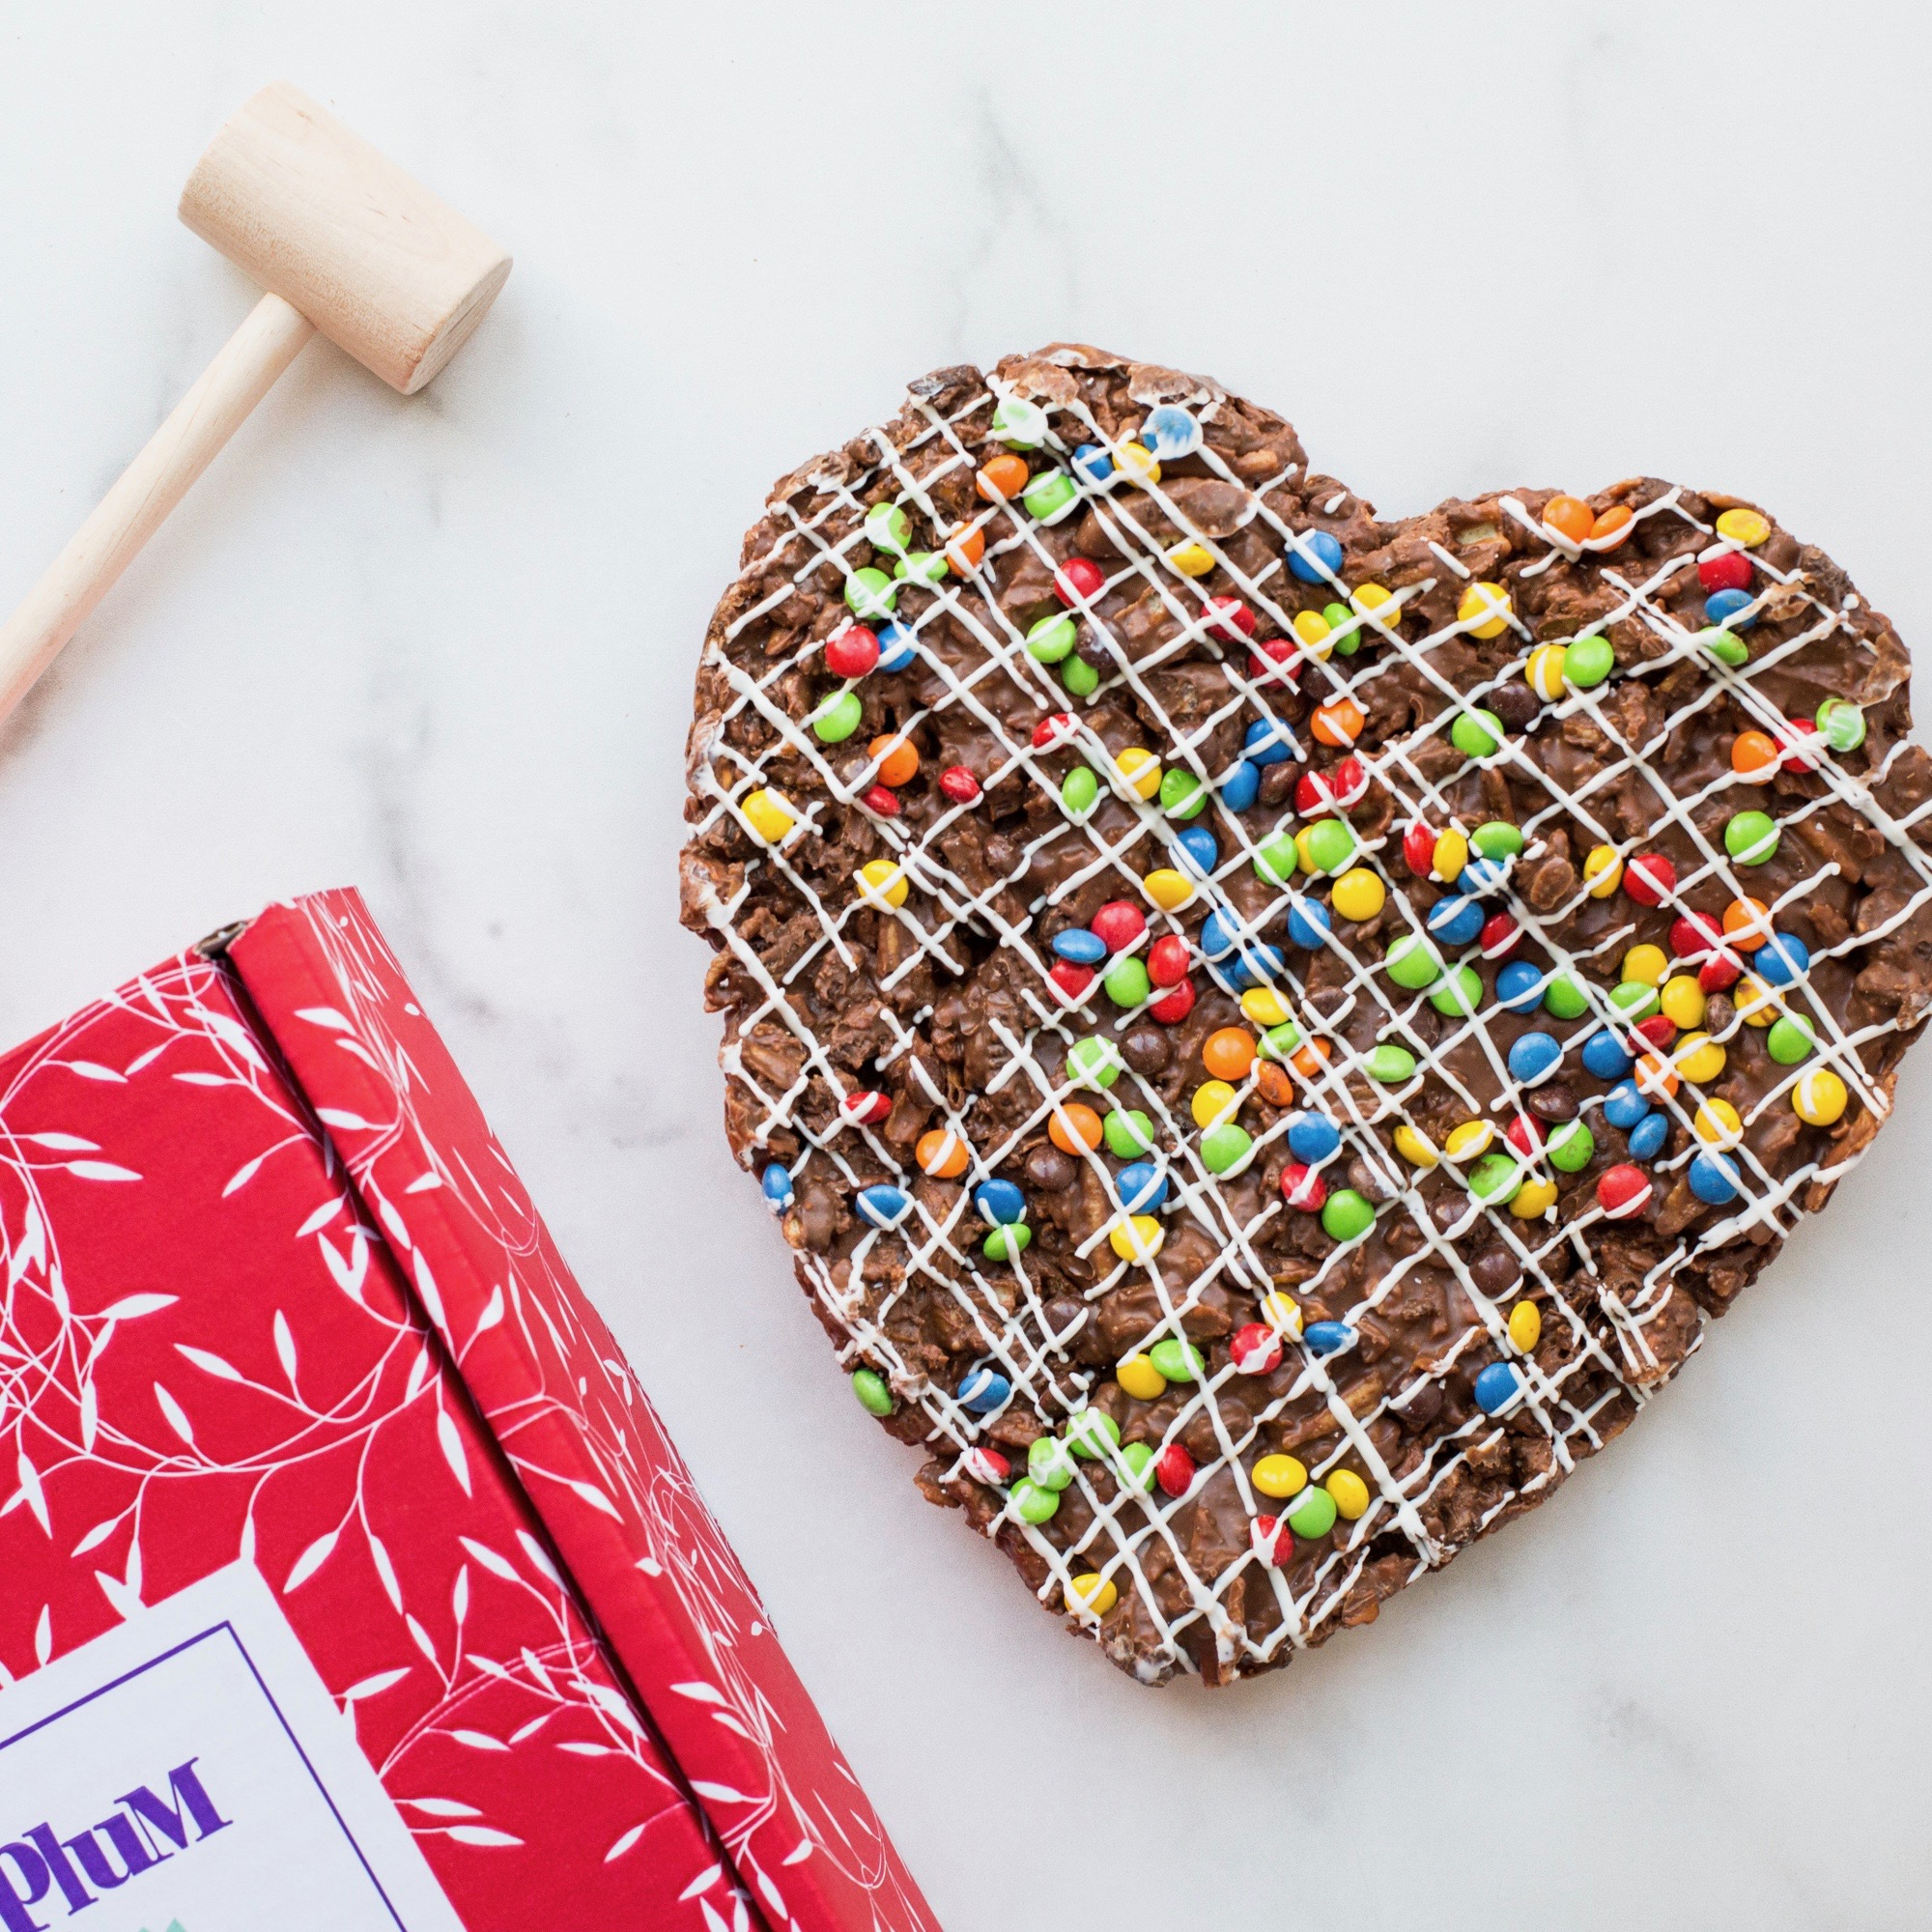 Chocolate Heart Pizza Image